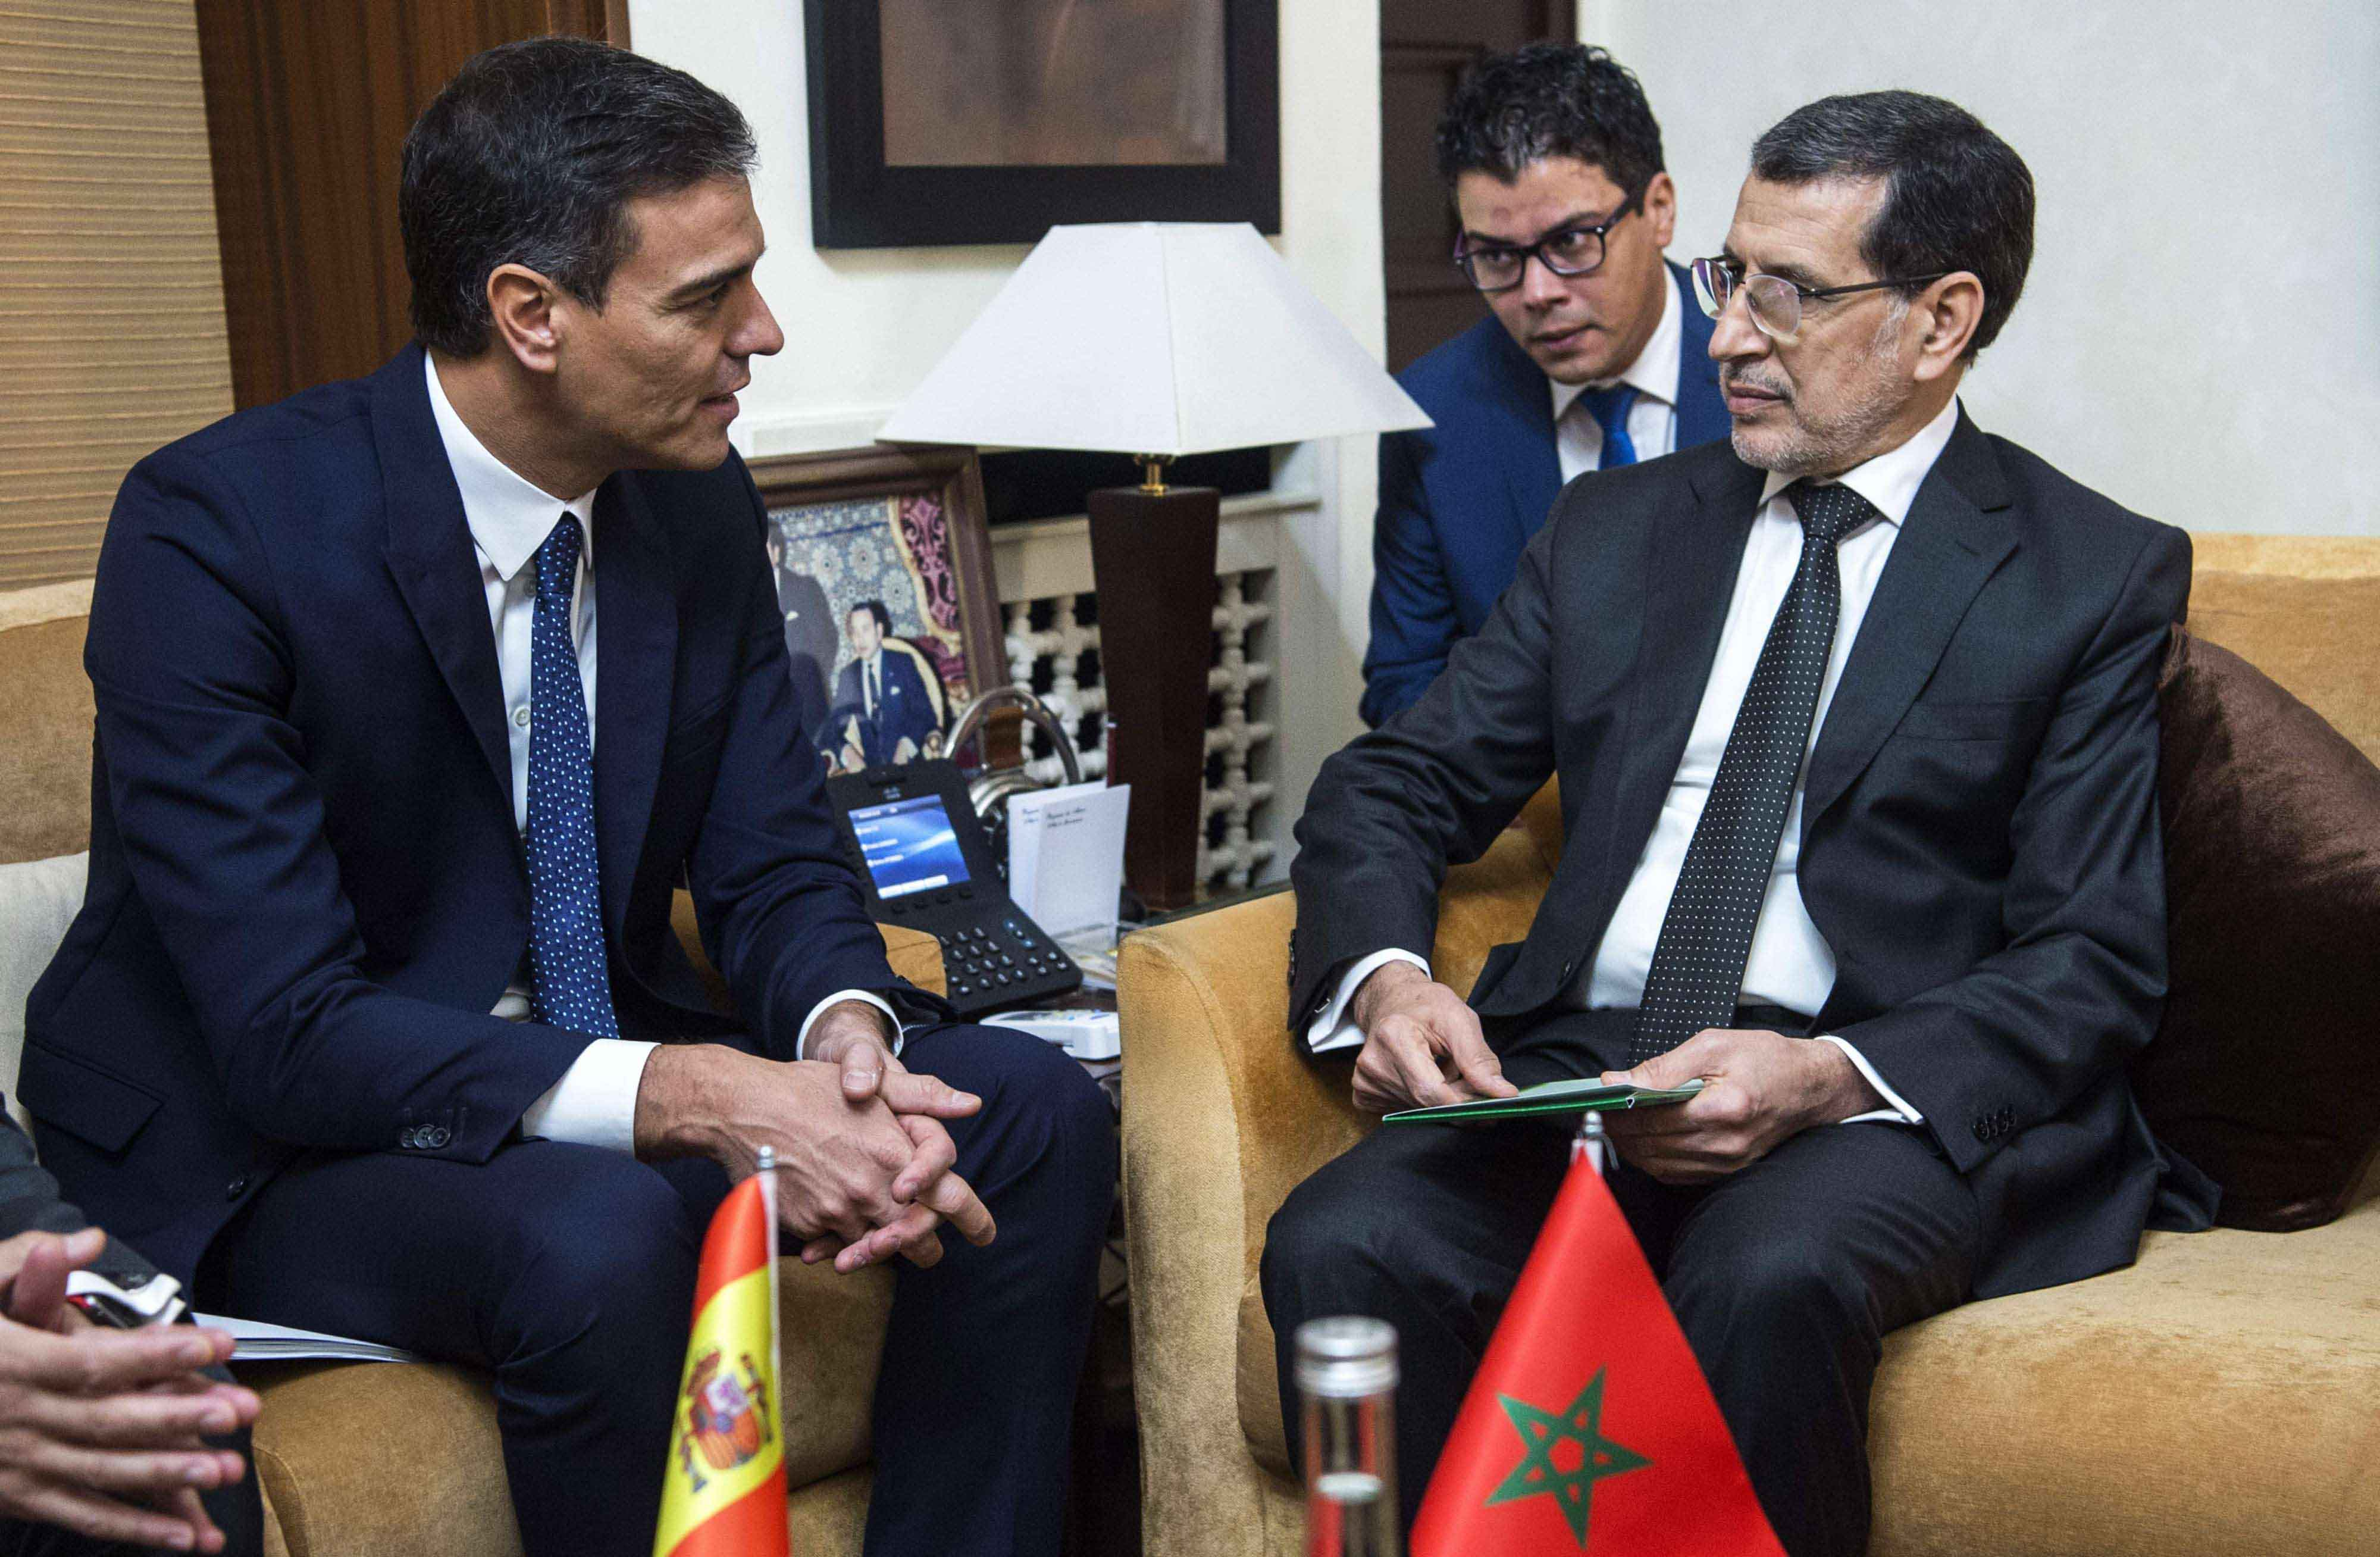 Moroccan authorities say that between January and the end of September they stopped some 68,000 illegal attempts to cross into Europe